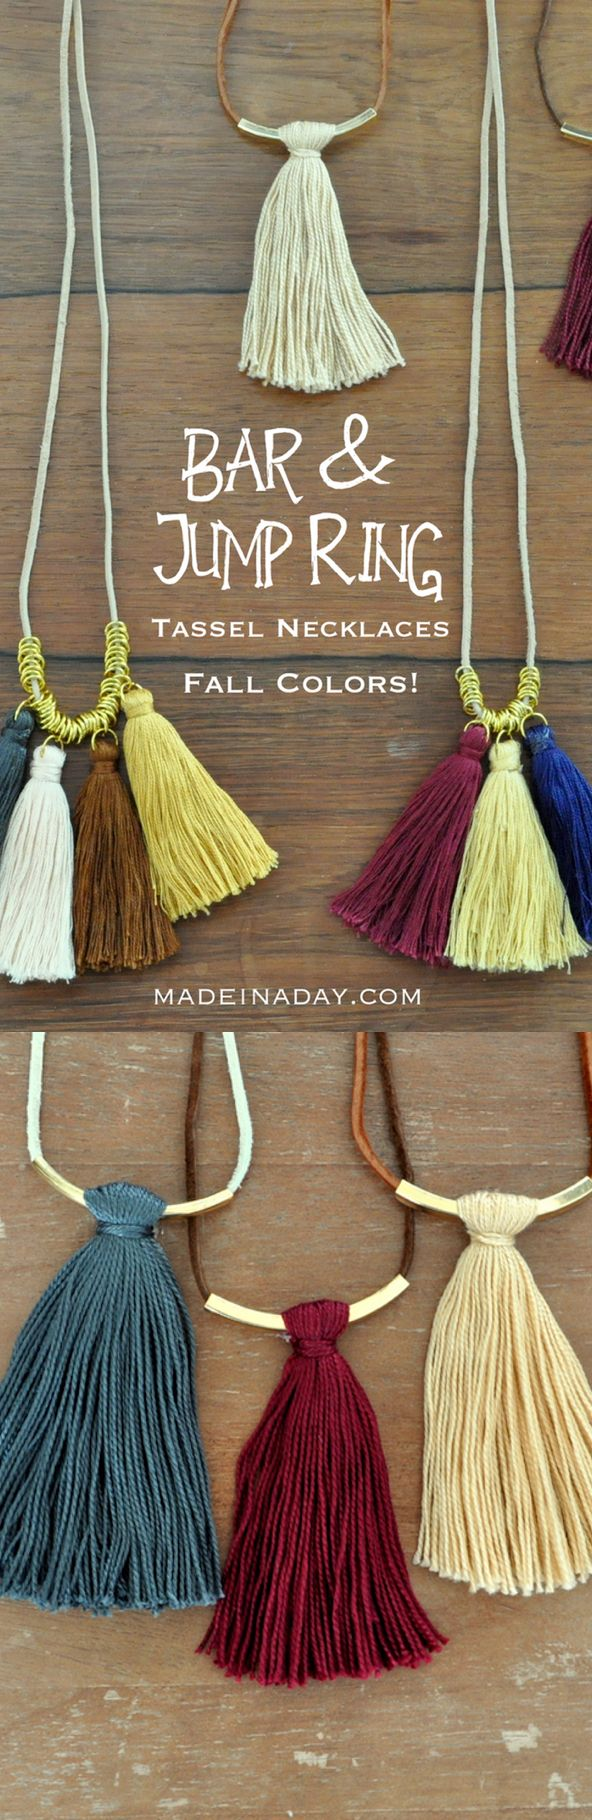 How to make the super trendy tassel necklaces using jewelry bars and Jump rings for added decoration. Easy DIY tassels.